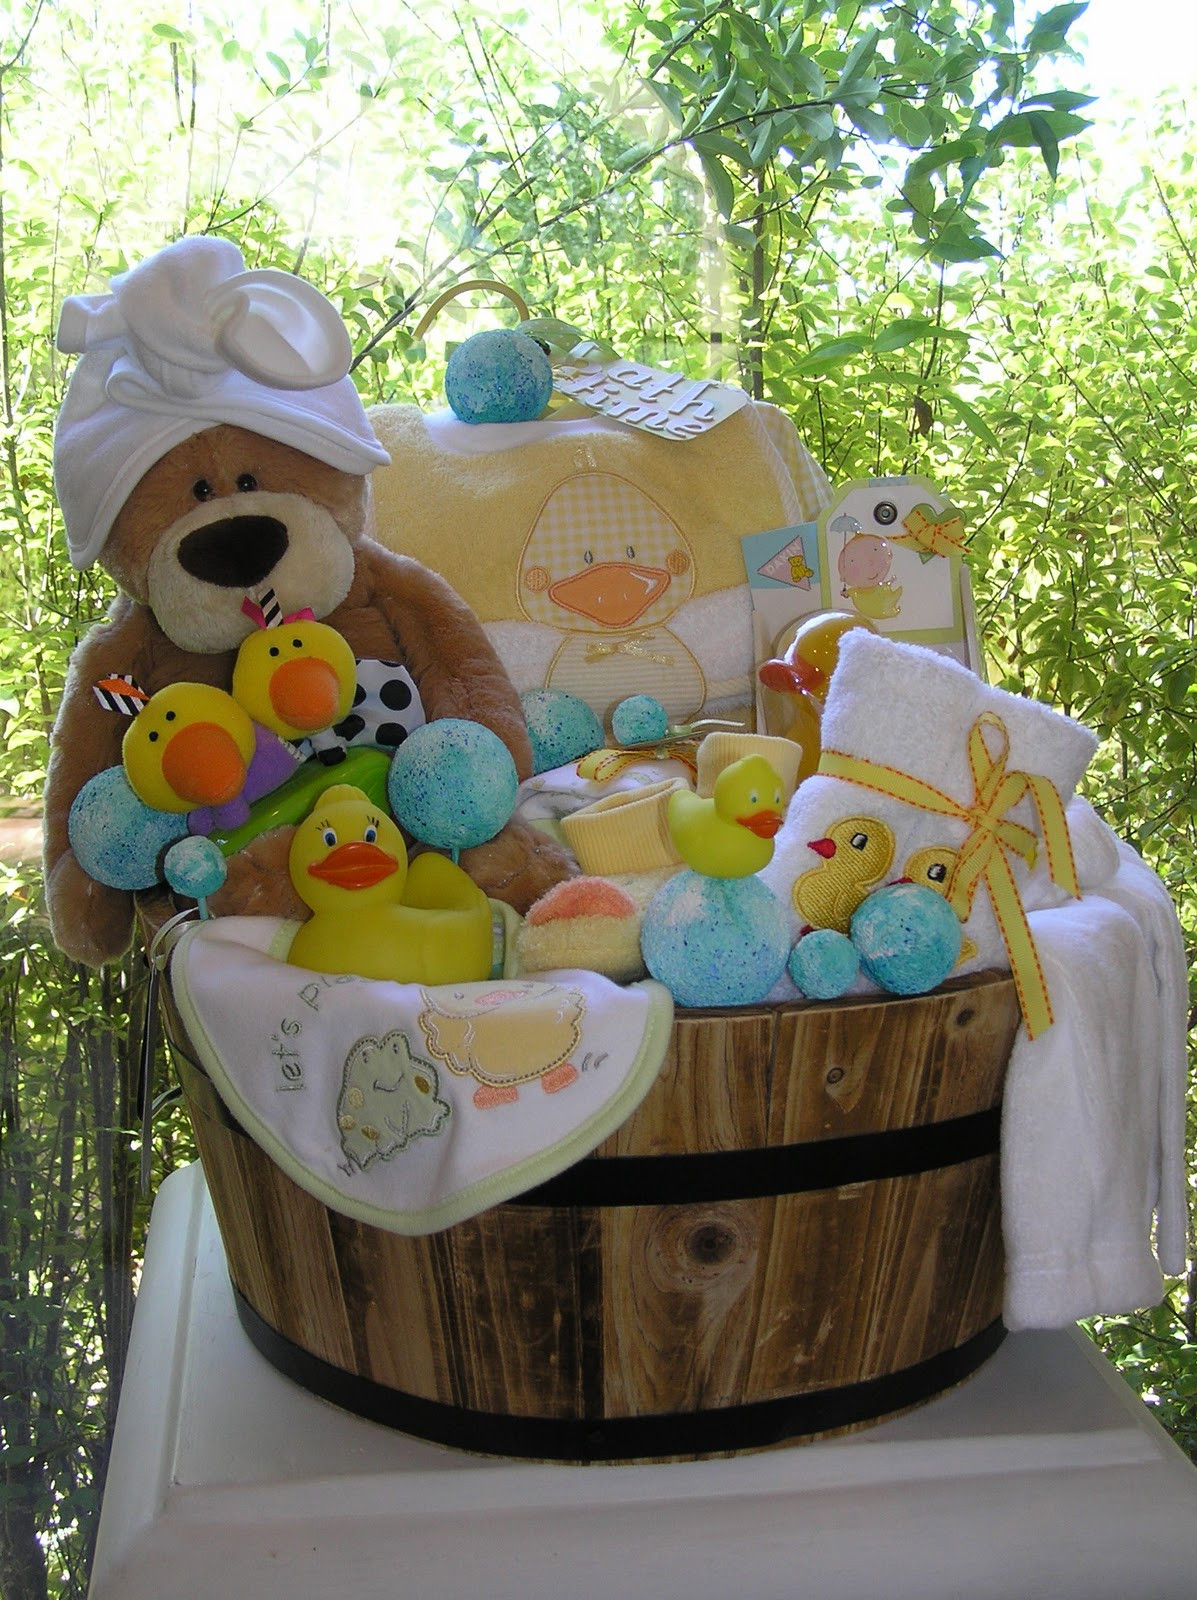 Best ideas about Baby Gift Baskets Ideas . Save or Pin White Horse Relics Unique Themed Baby Gift Baskets Now.